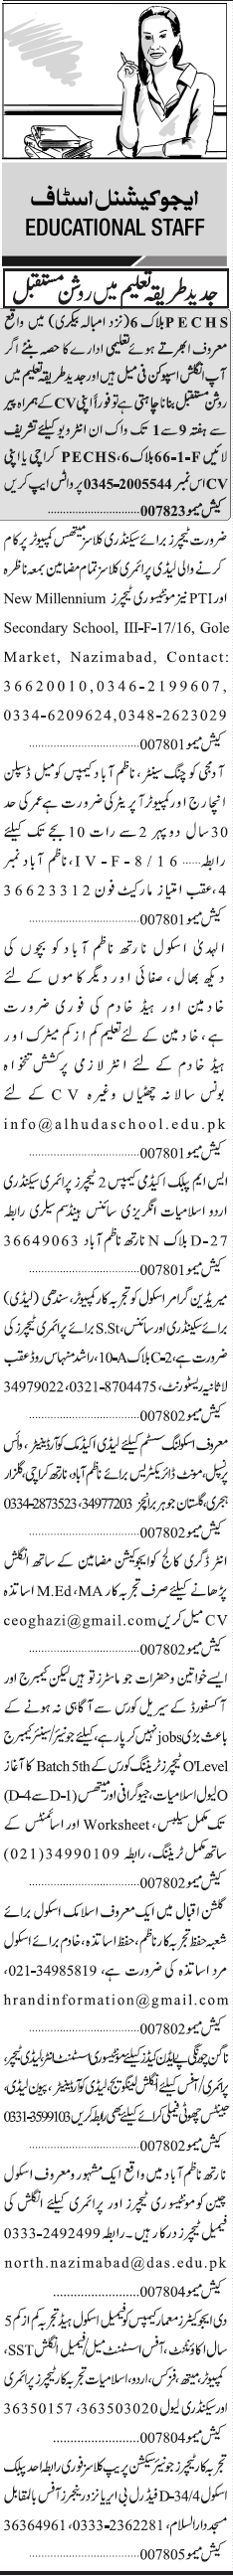 Educational Staff Jobs In Karachi 2018